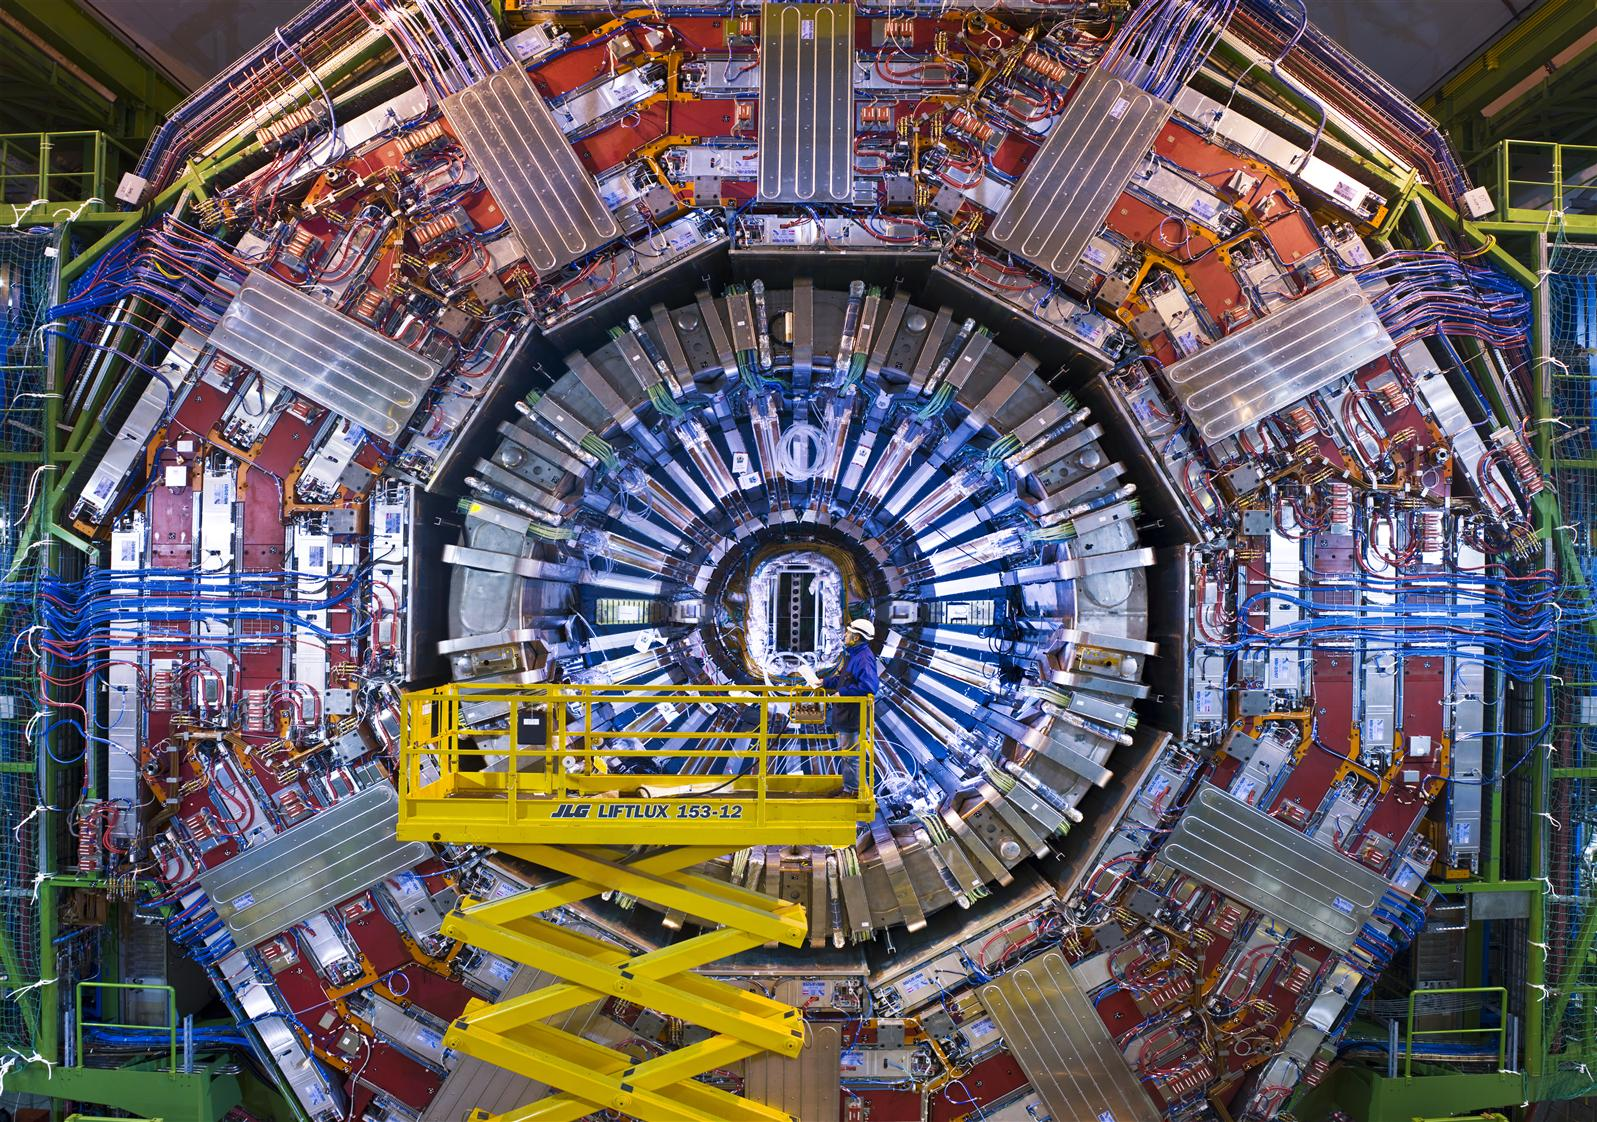 The CMS, or Compact Muon Solenoid, is not what most people would call compact. It's one of the two general-purpose experiments at the Large Hadron Collider with which physicists hope to detect the Higgs boson.